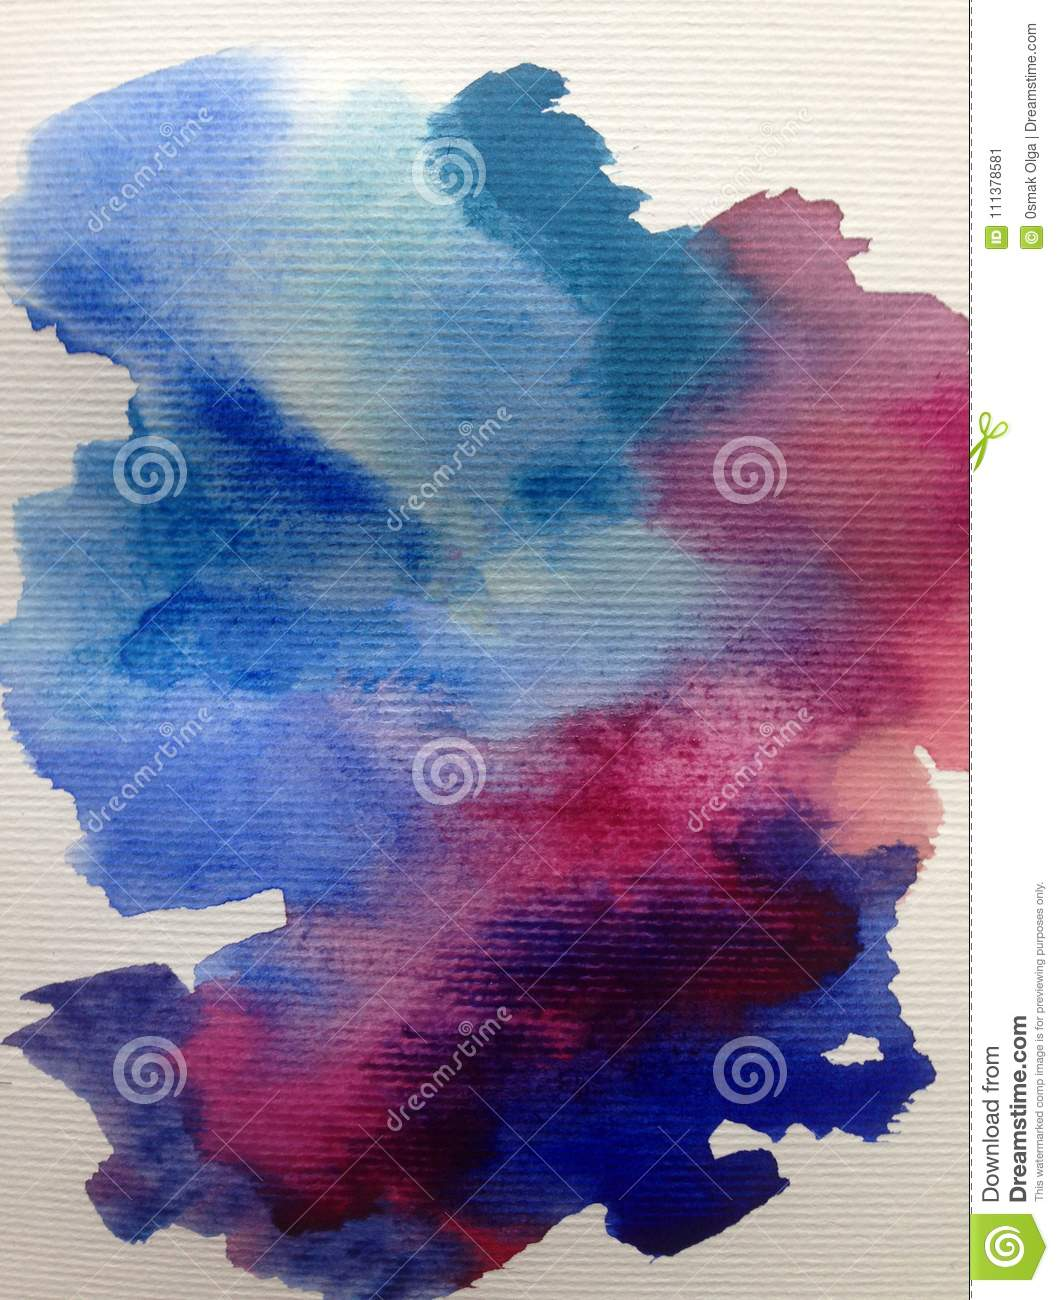 Watercolor art abstract background sky cloud texture wet wash blurred fantasy